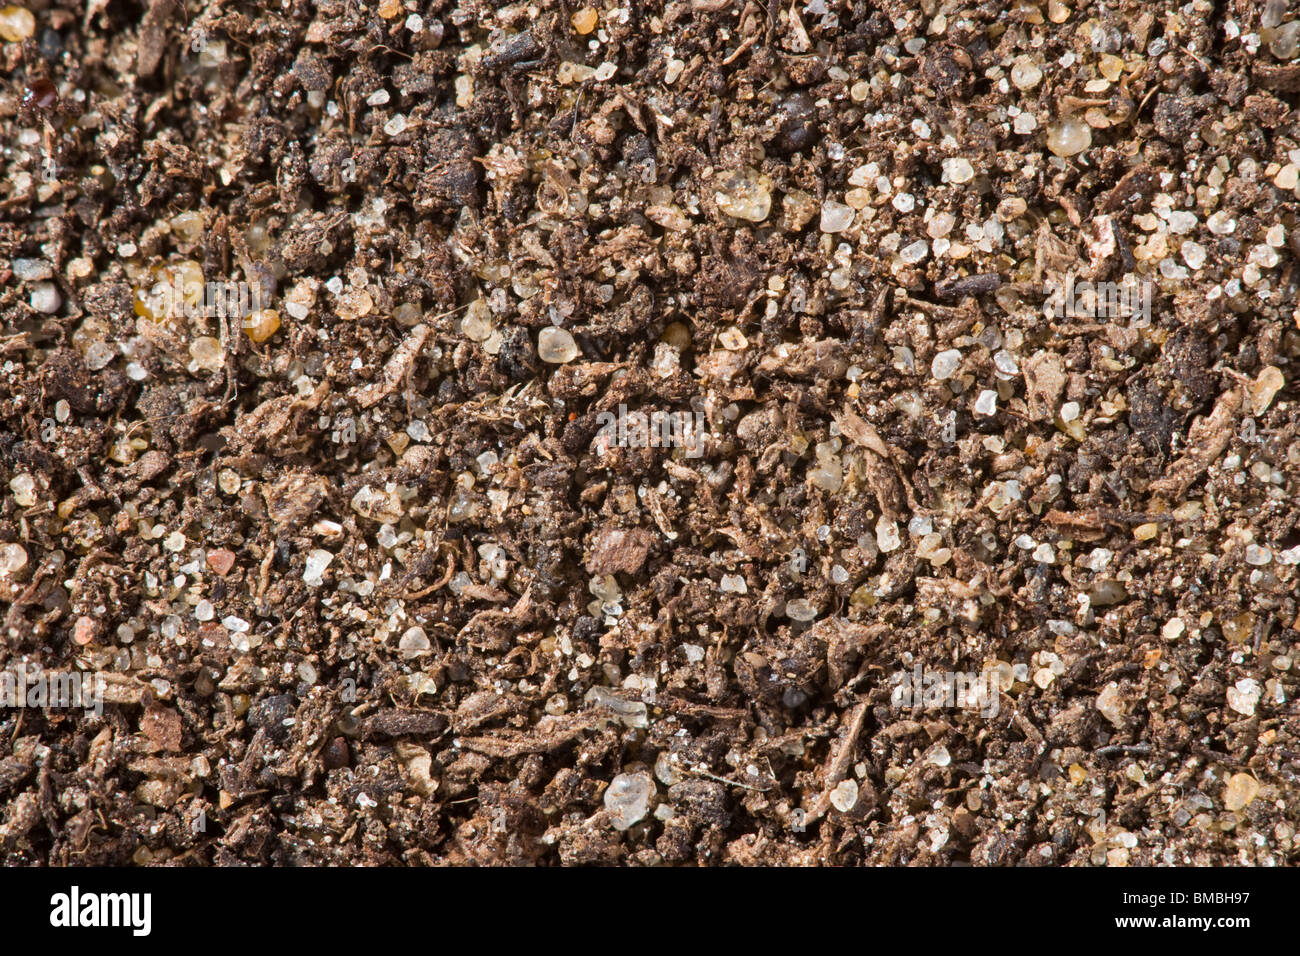 Soil in extreme close up - Stock Image